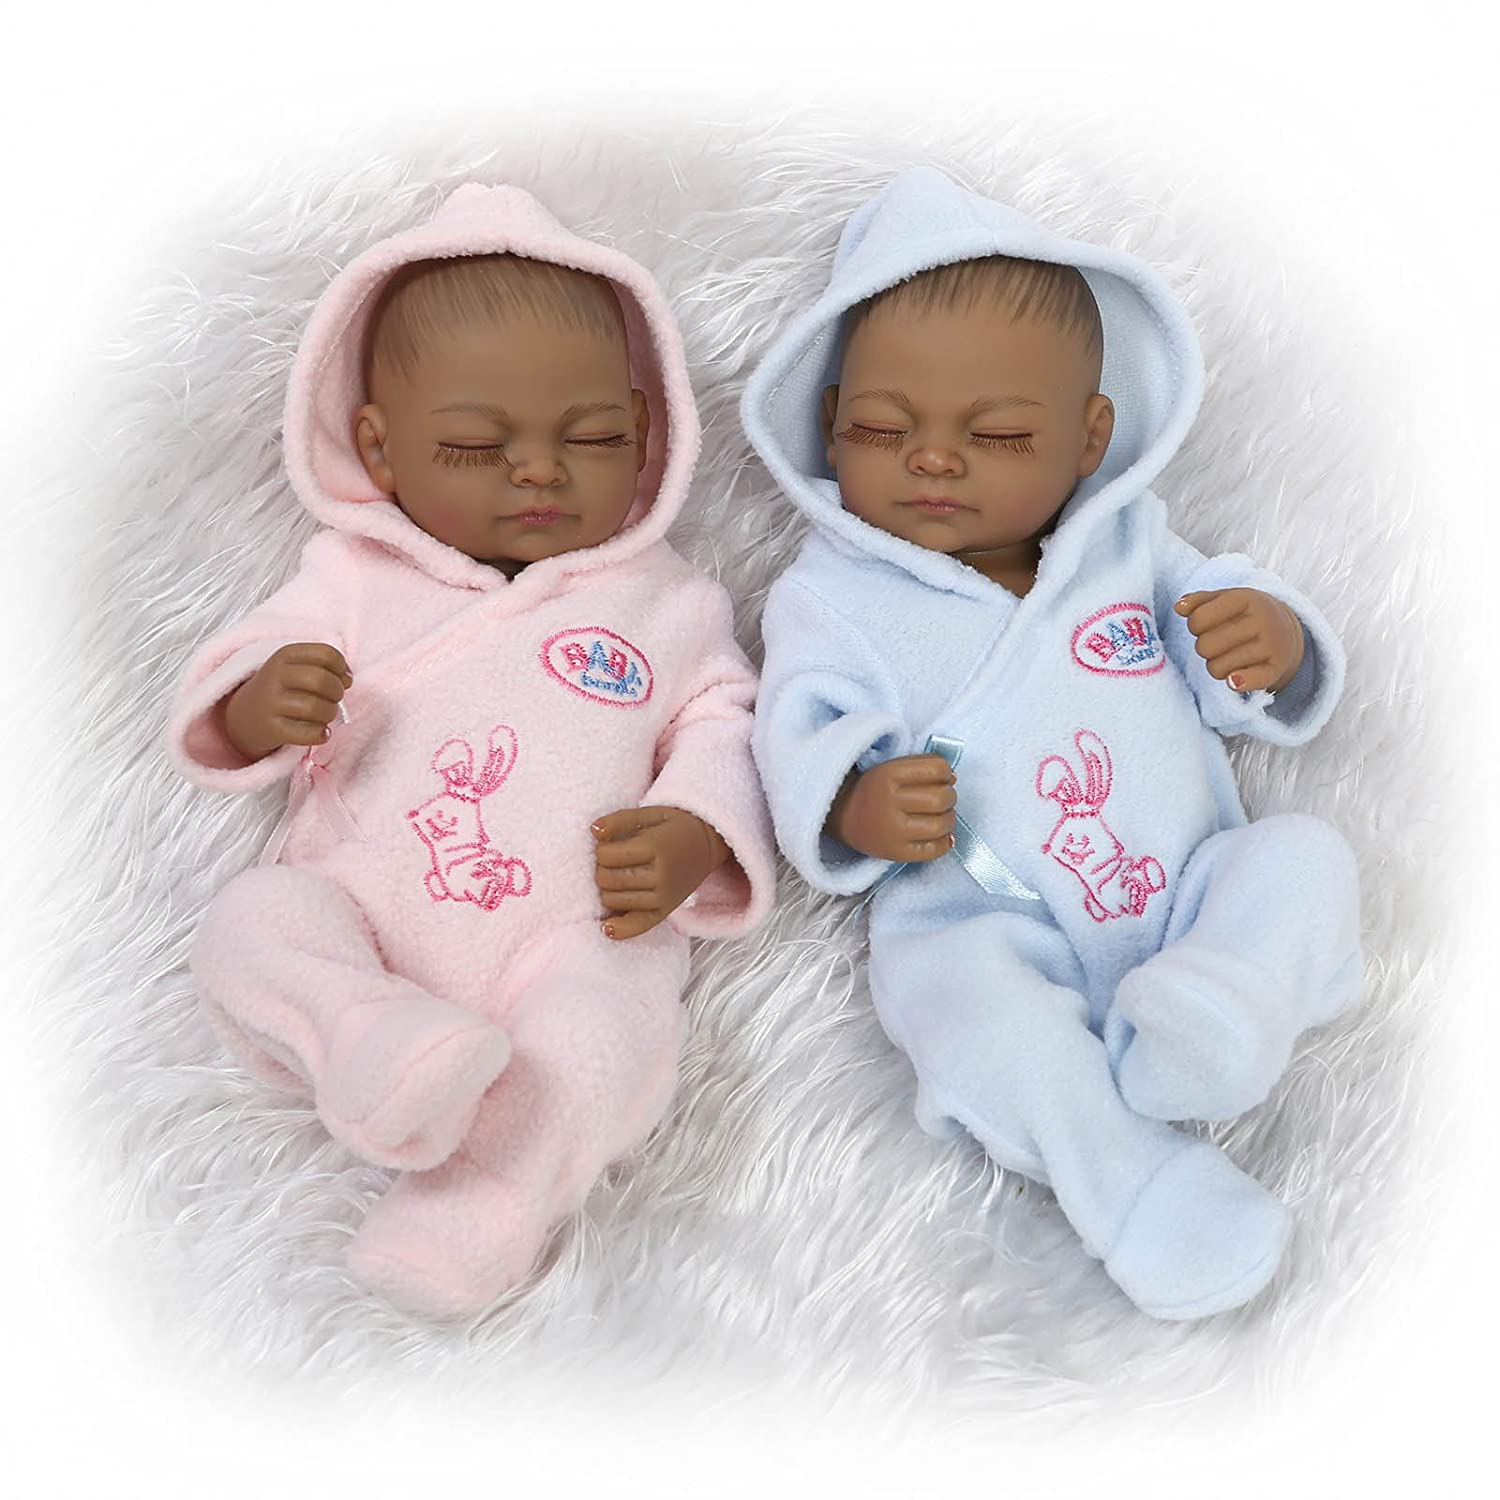 Icradle twins dolls mini black reborn dolls 10 in 26cm full body silicone realstic looking premiee baby anatomically correct boy girl waterproof with